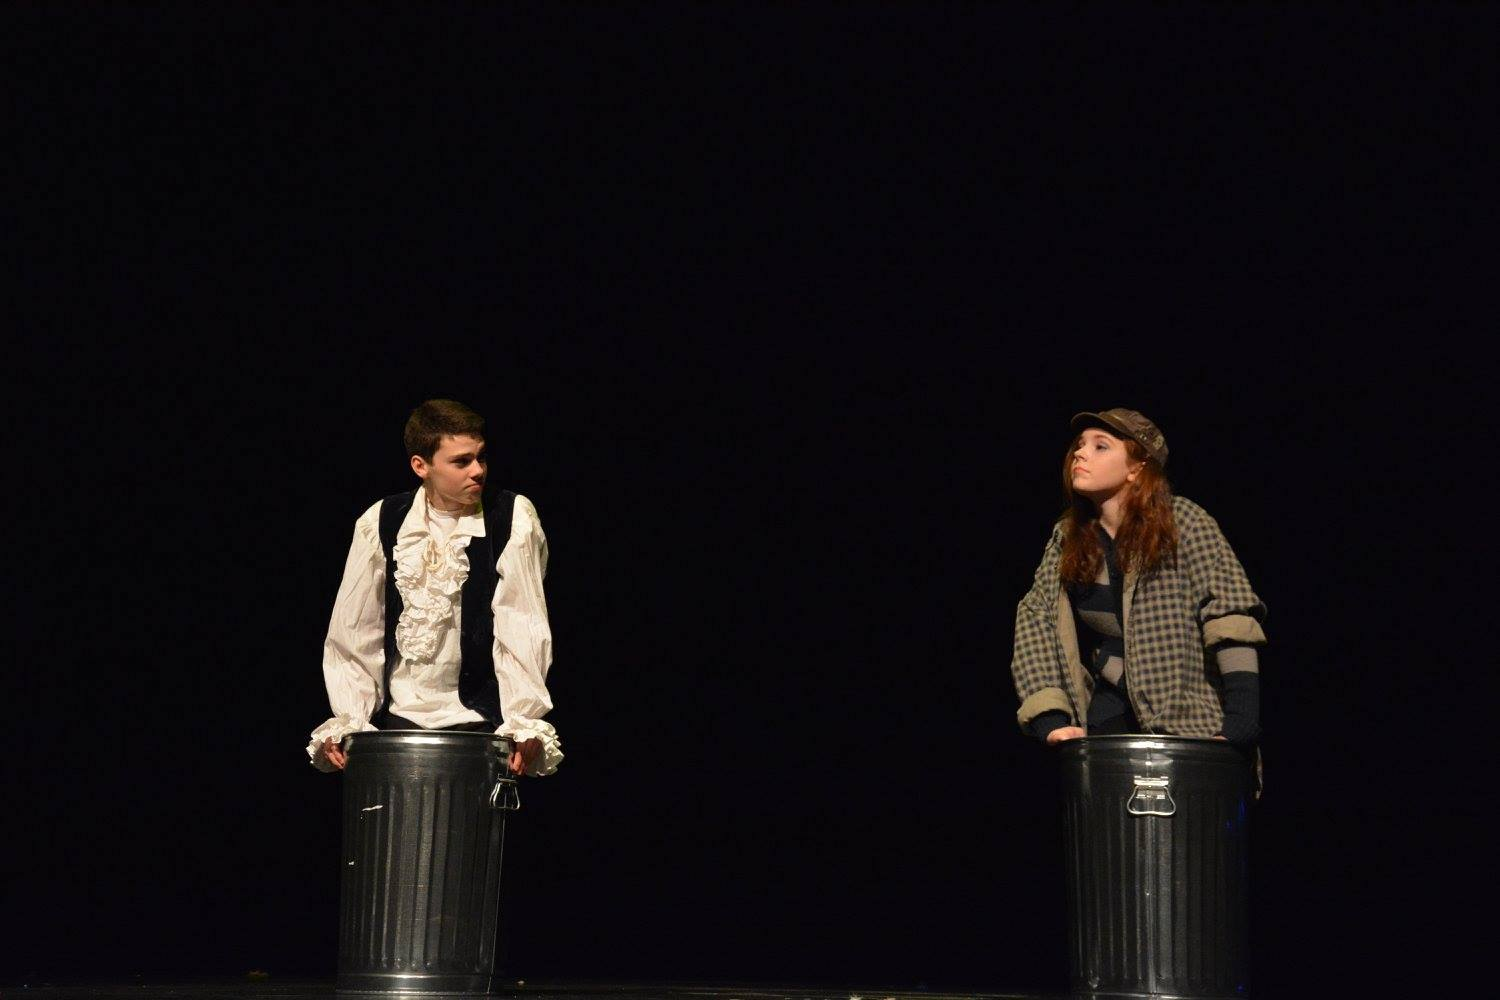 Sophomore+Chloe+Morse+and+9th+grader+Vliestra+performing+in+the+One+Acts+on+Jan.+27.